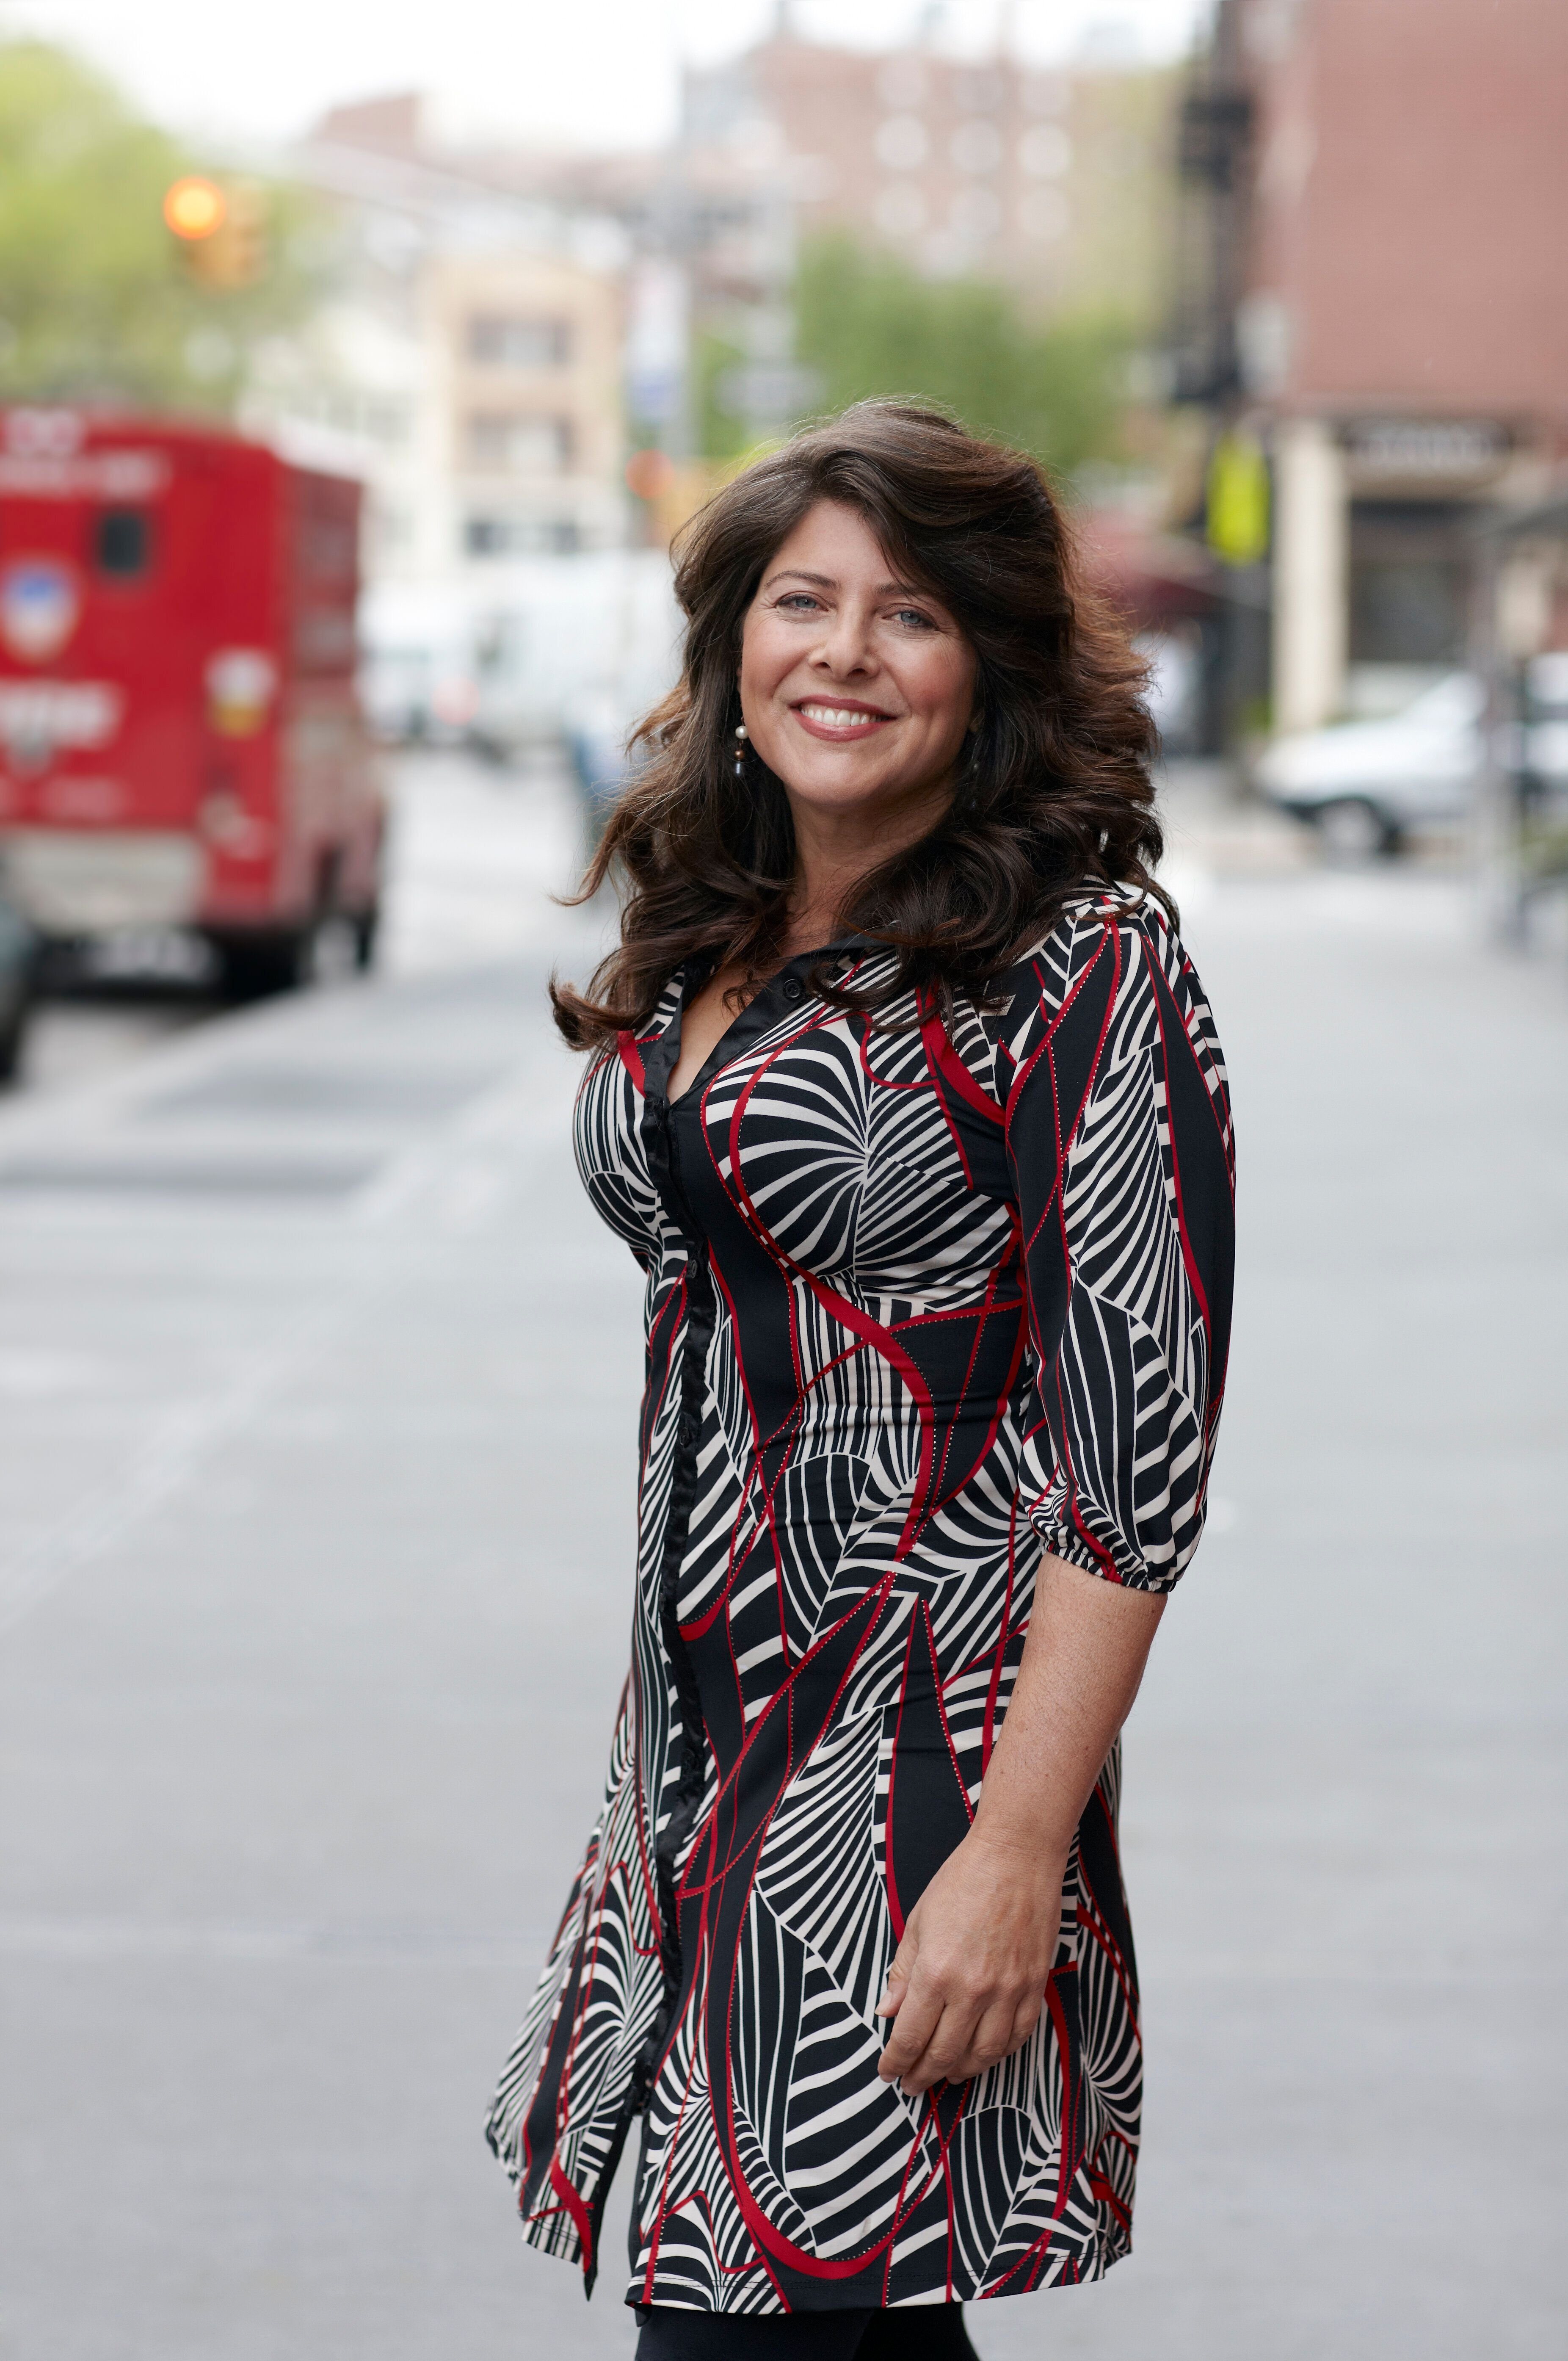 NEW YORK CITY, NEW YORK - MAY 2: Naomi Wolf poses for a portrait in New York City, NY on May 2, 2011. Wolf is an American author and former political consultant, who has been described as the third wave of the feminist movement. (Photo by Grant Delin For The Washington Post via Getty Images)